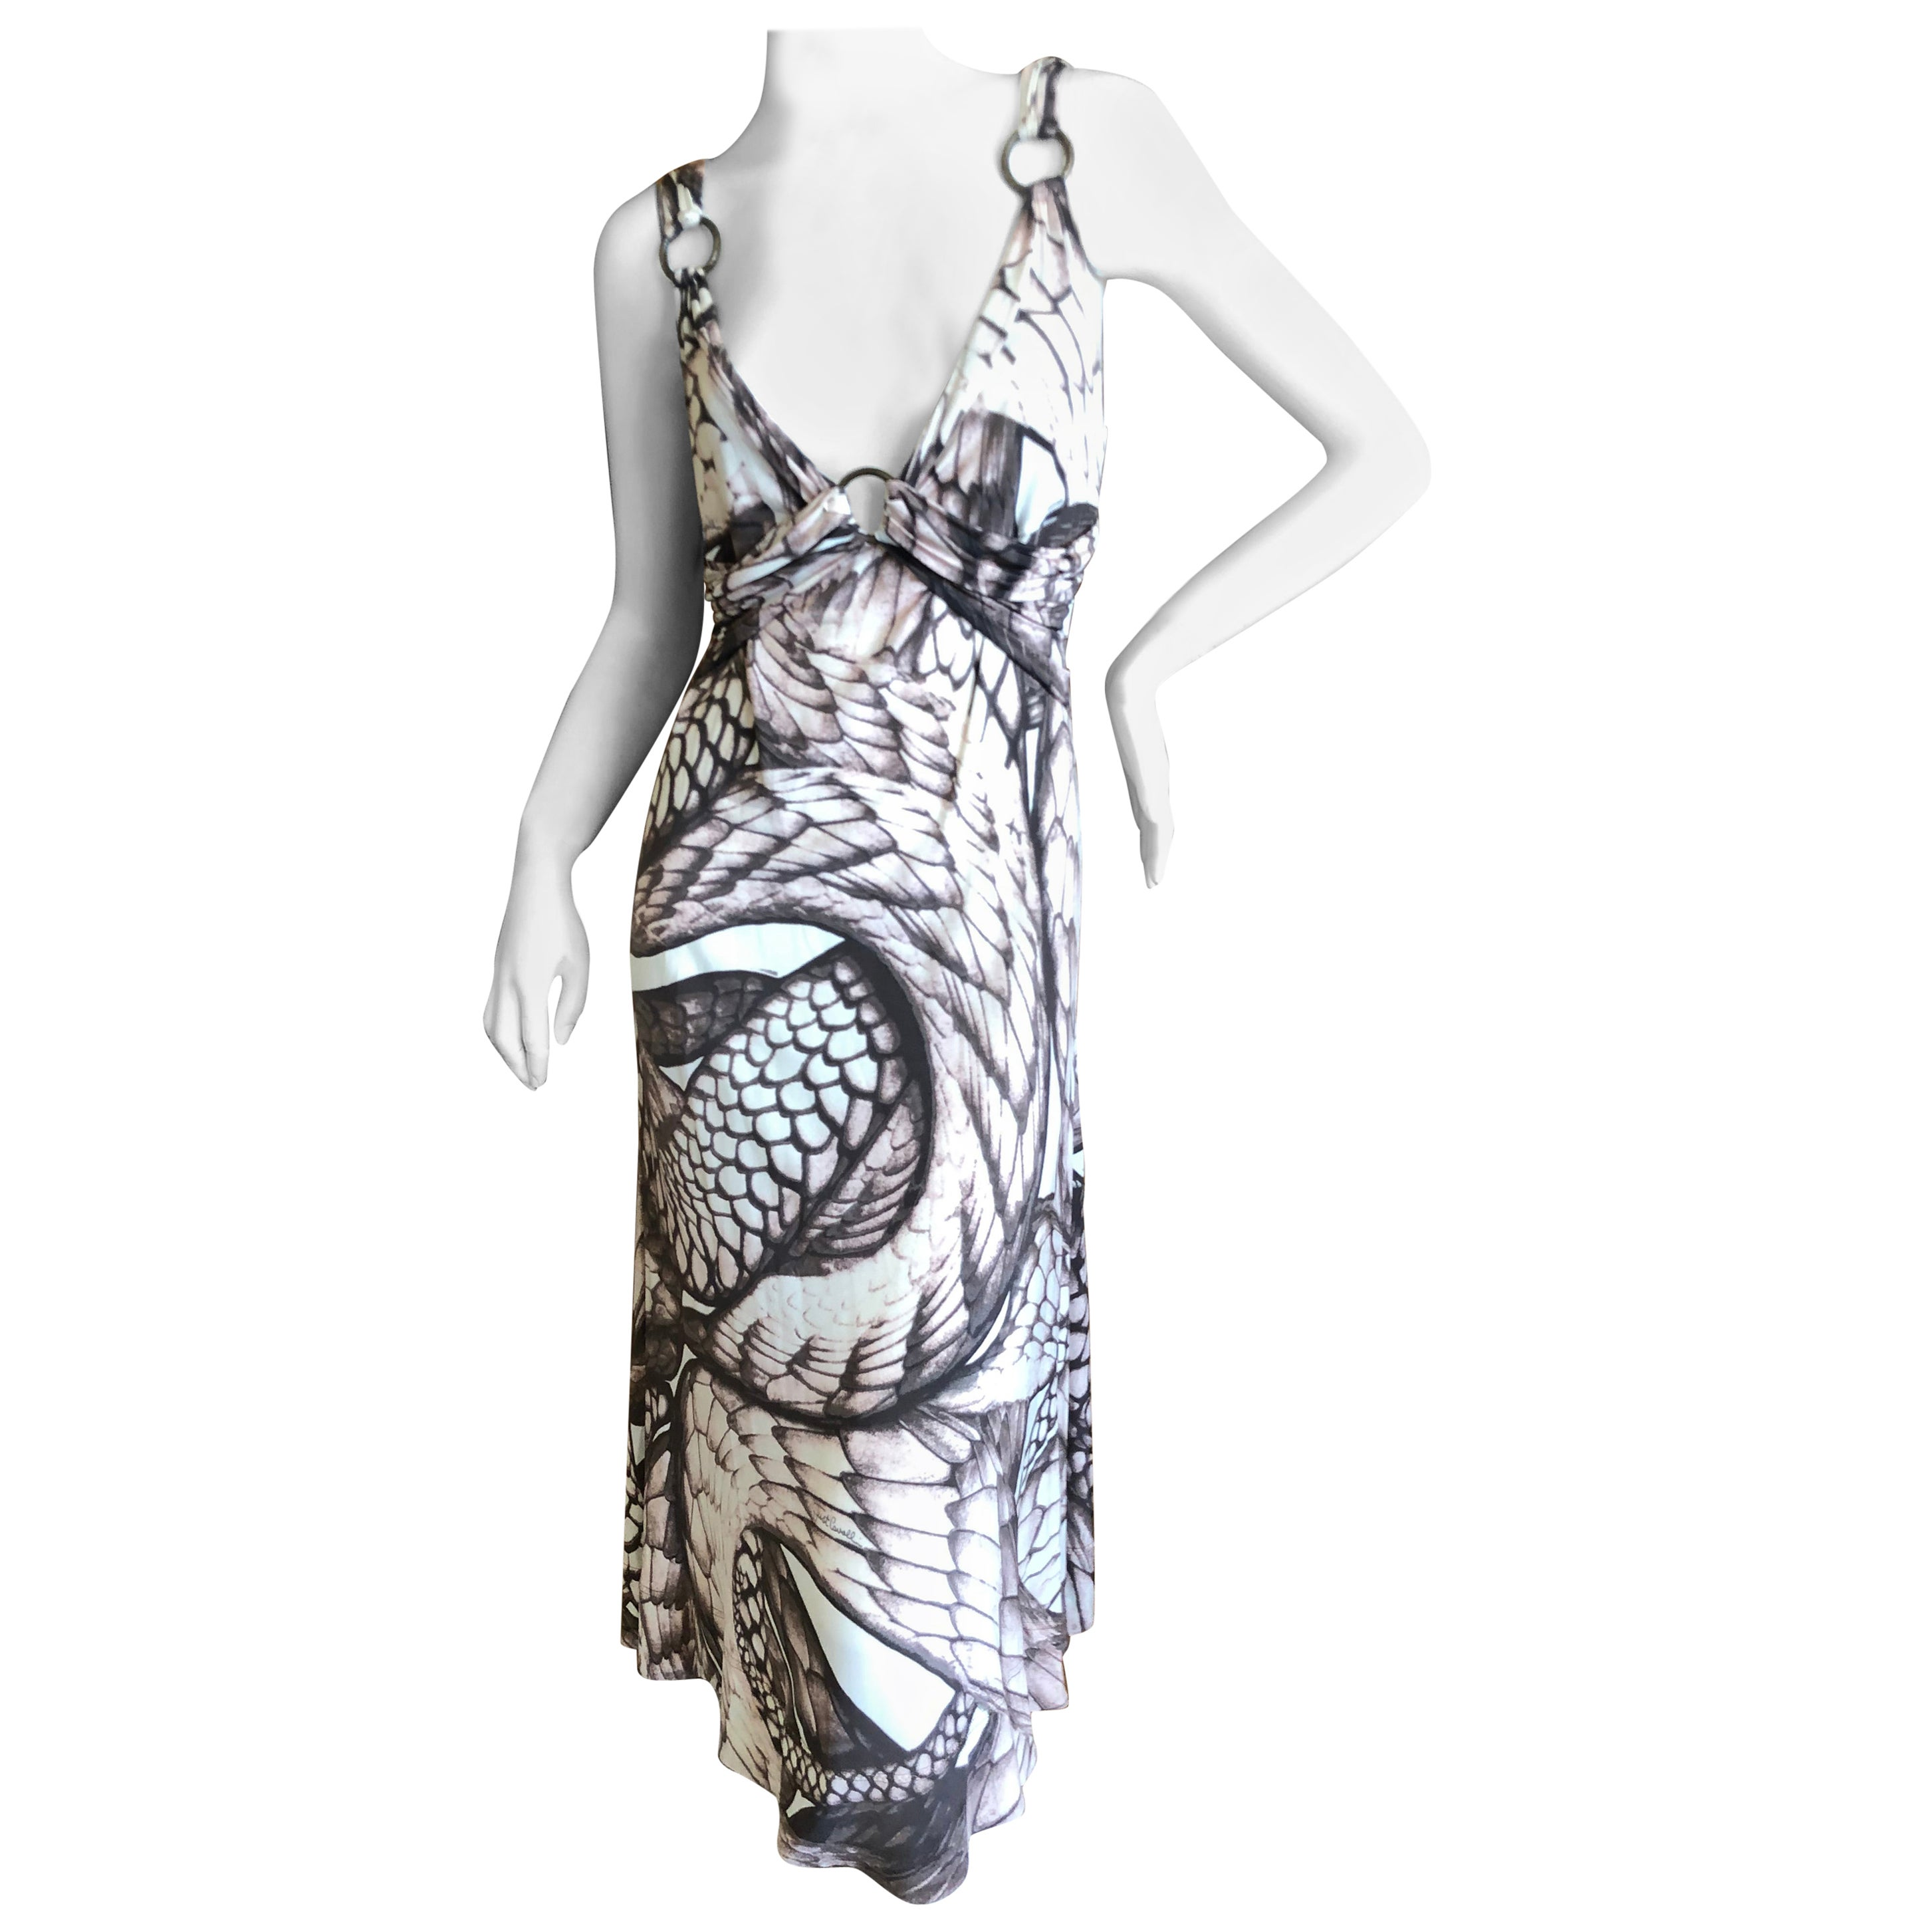 Roberto Cavalli for Just Cavalli Snake Print Dress with Brass Rings Sz 46